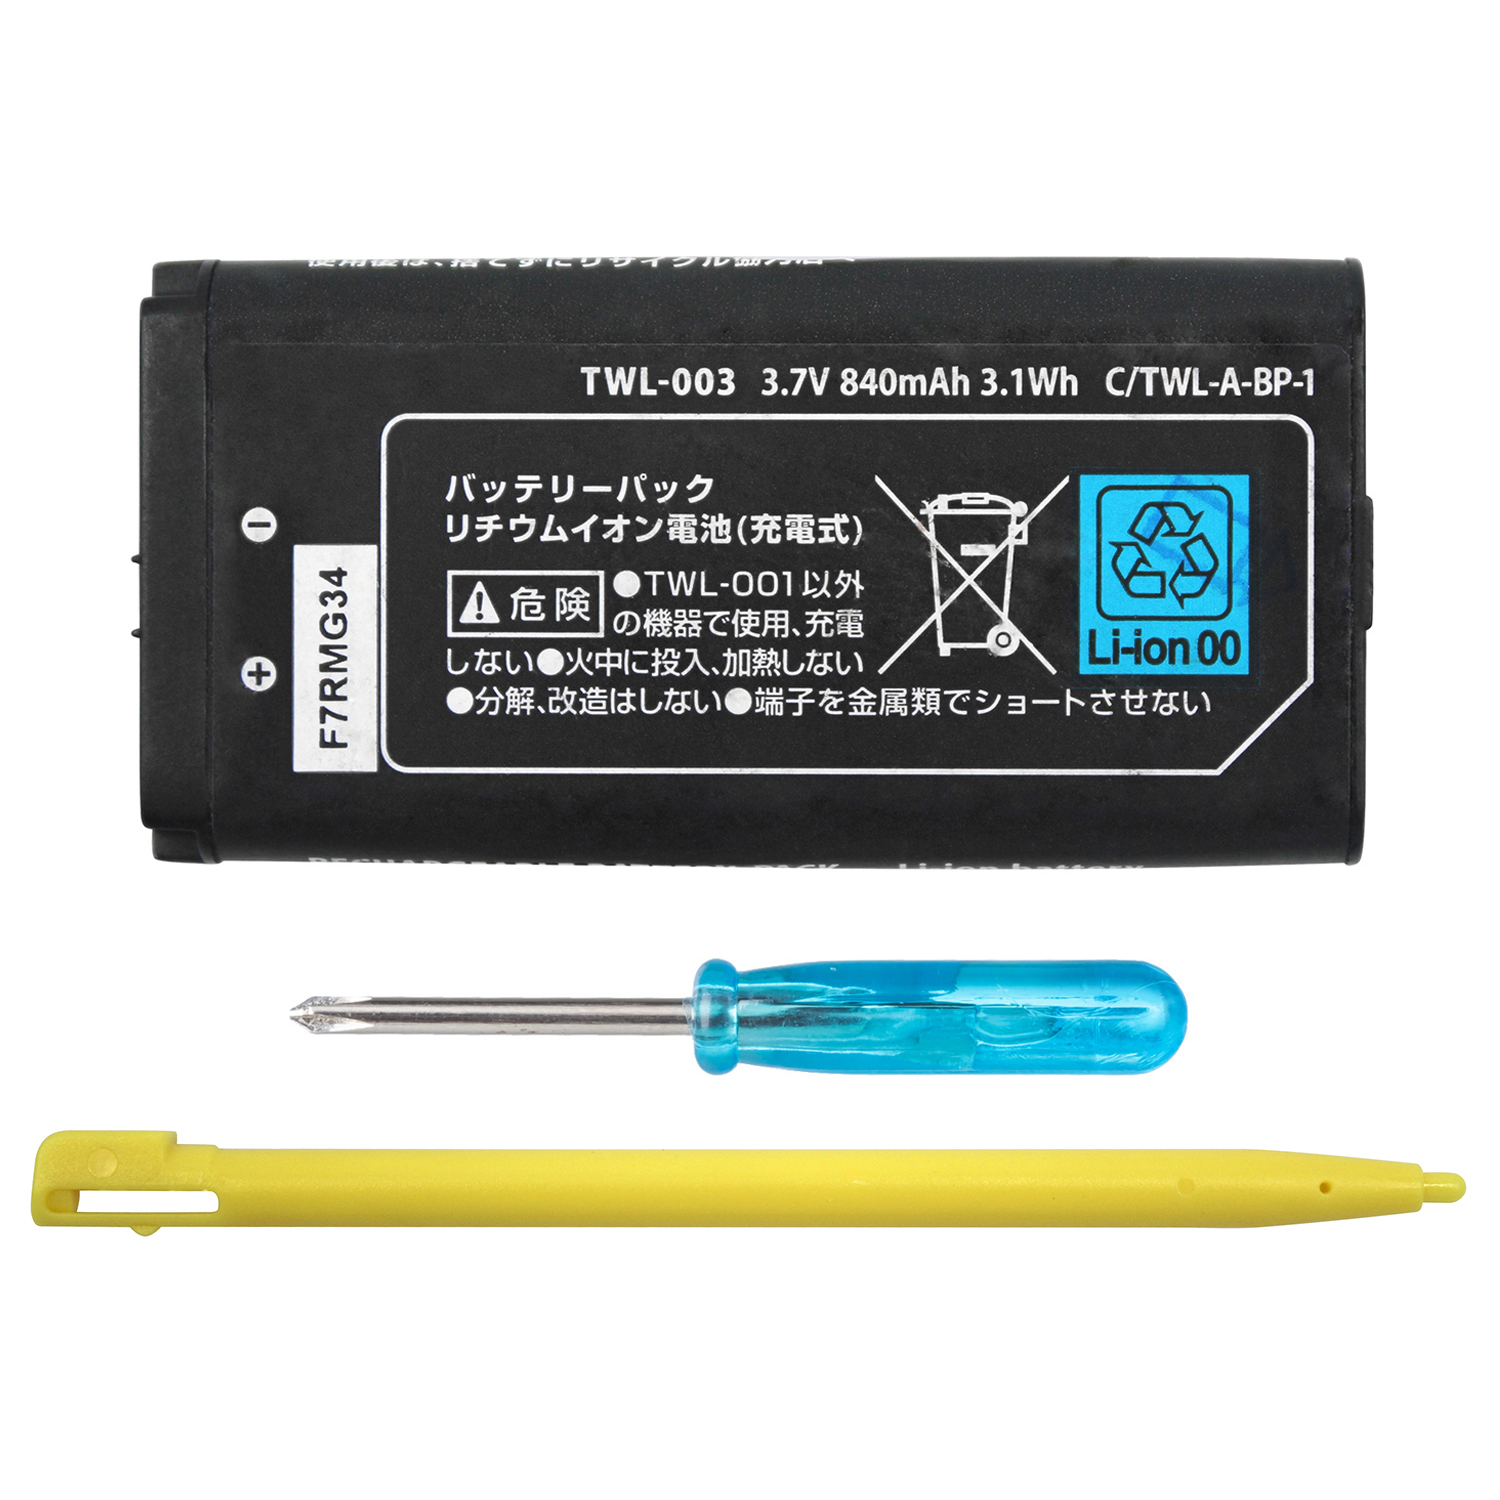 OSTENT 840mAh Rechargeable Lithium-ion Battery + Tool + Pen Pack Kit For Nintendo DSi NDSi